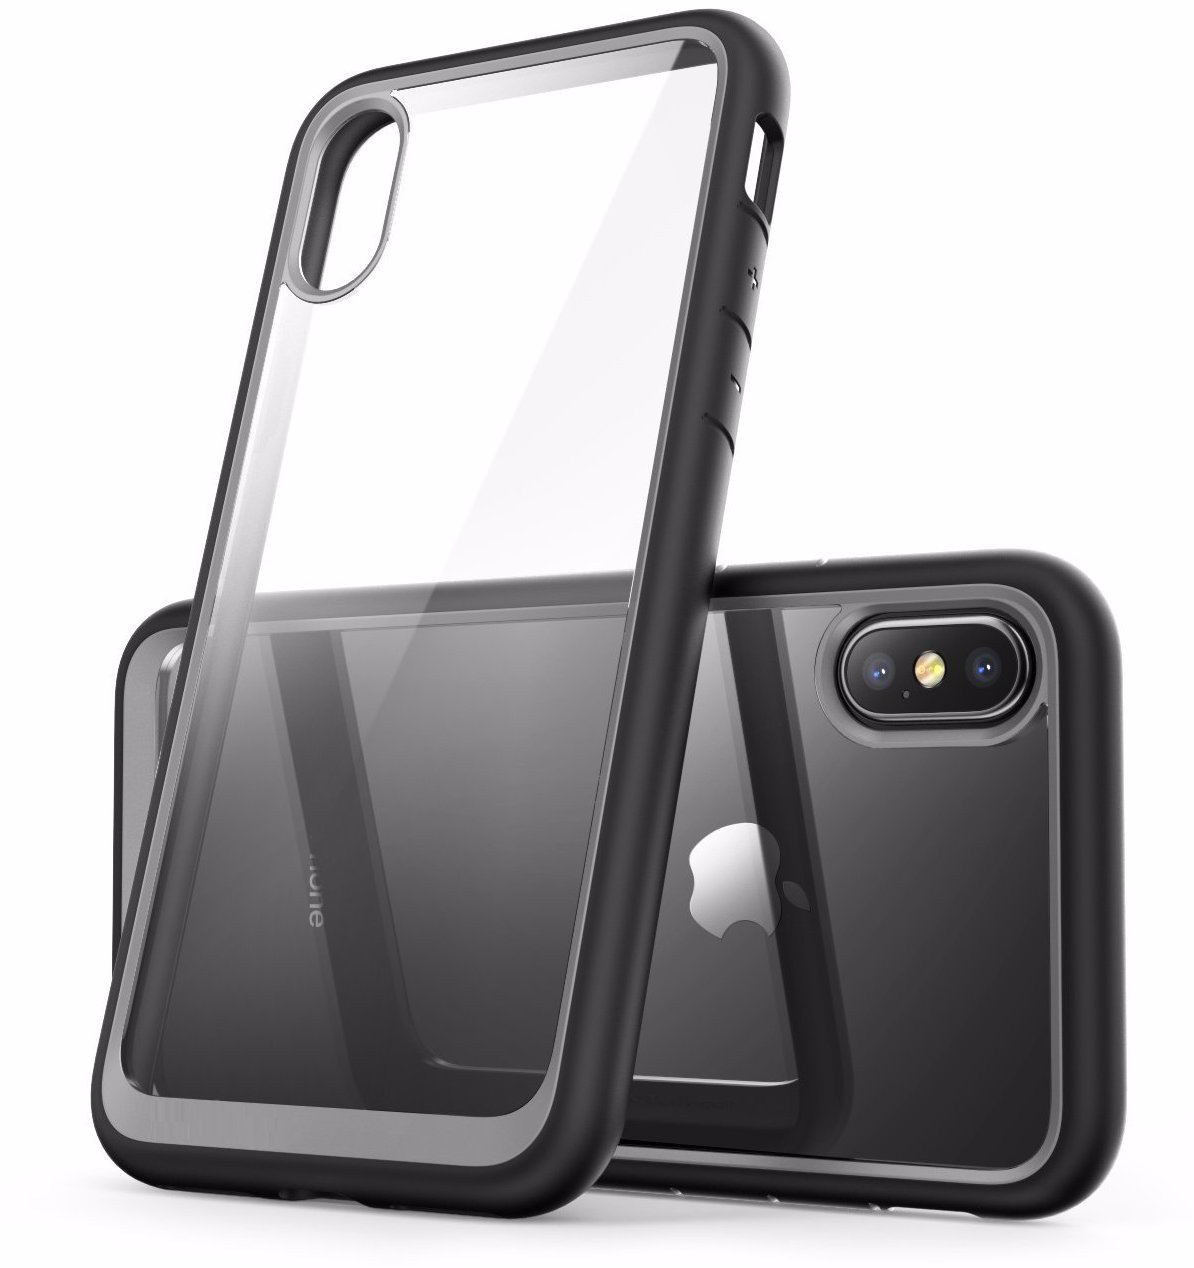 Protective Bumper Clear Phone Case for Apple iPhone iPhone 8 Plus / 7 Plus  - Black